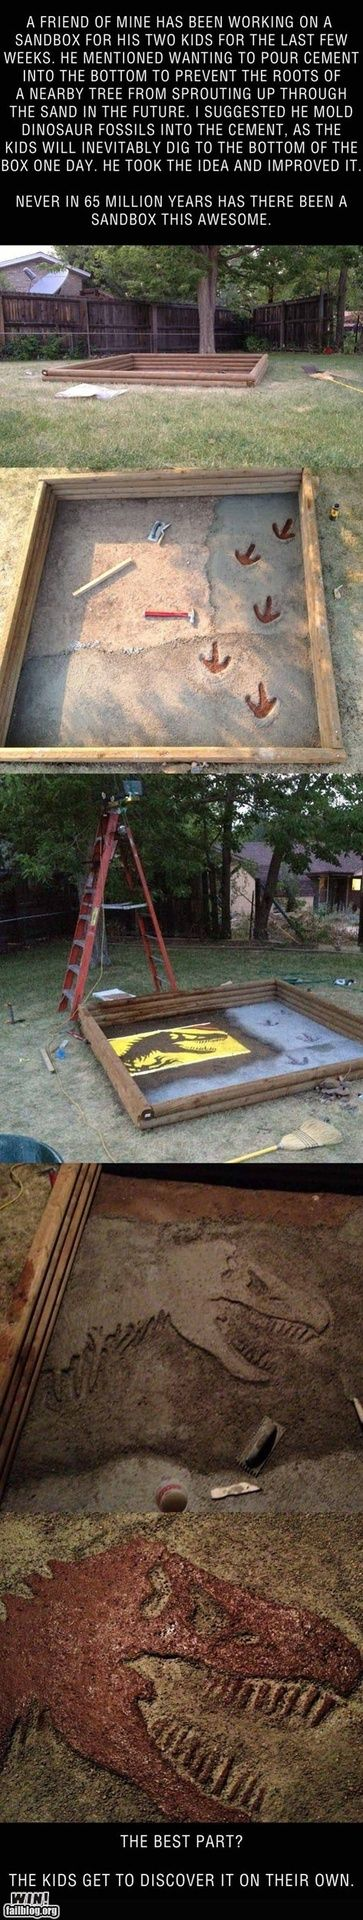 Incredibly dedicated parents required...if I ever have sandbox loving kids, I am so gonna do this!